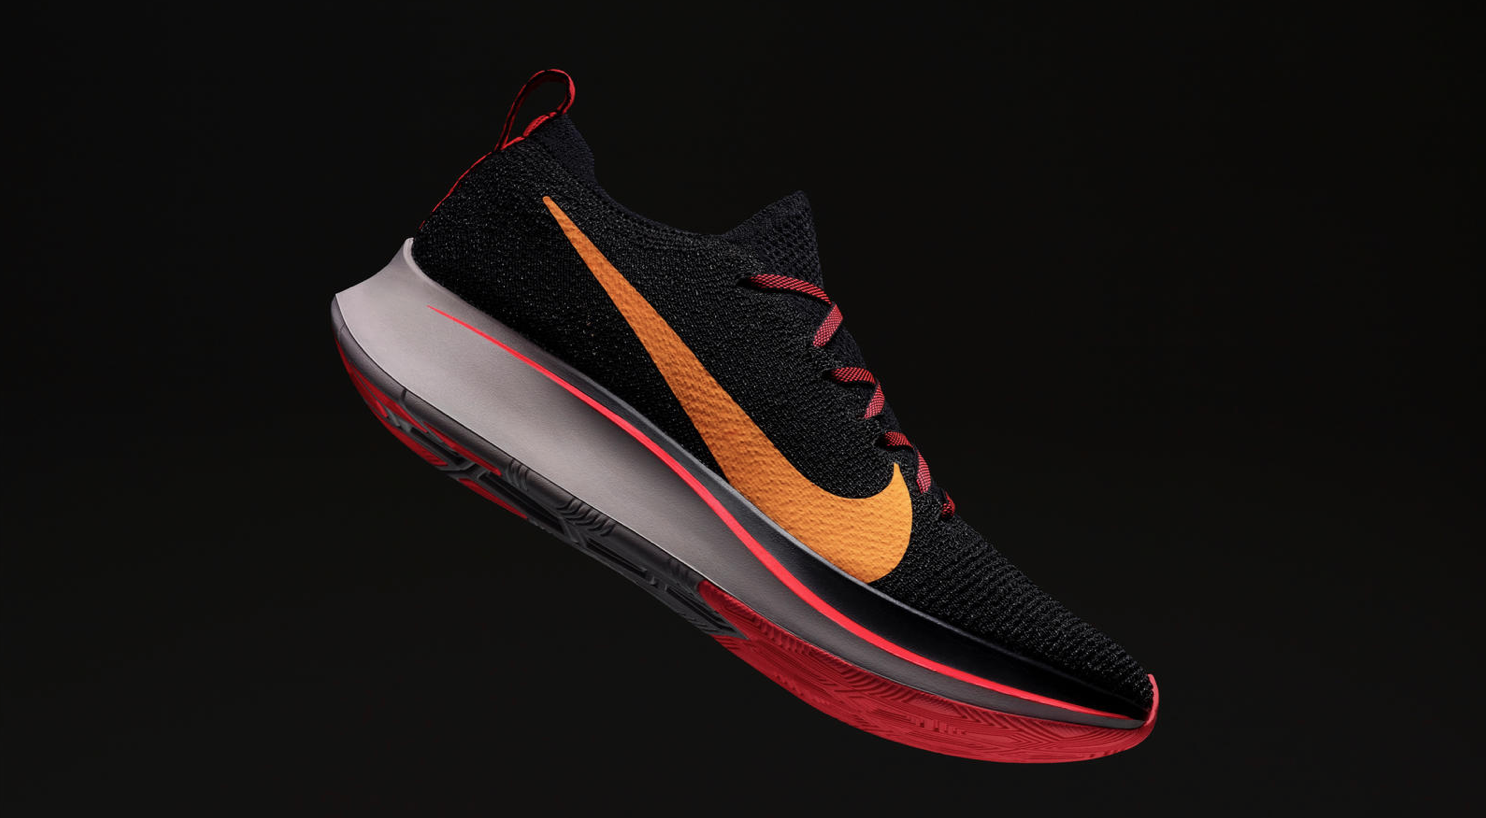 99b9c869cf4f0 Nike announces the Vaporfly 4% Flyknit and the Nike Zoom Fly Flyknit